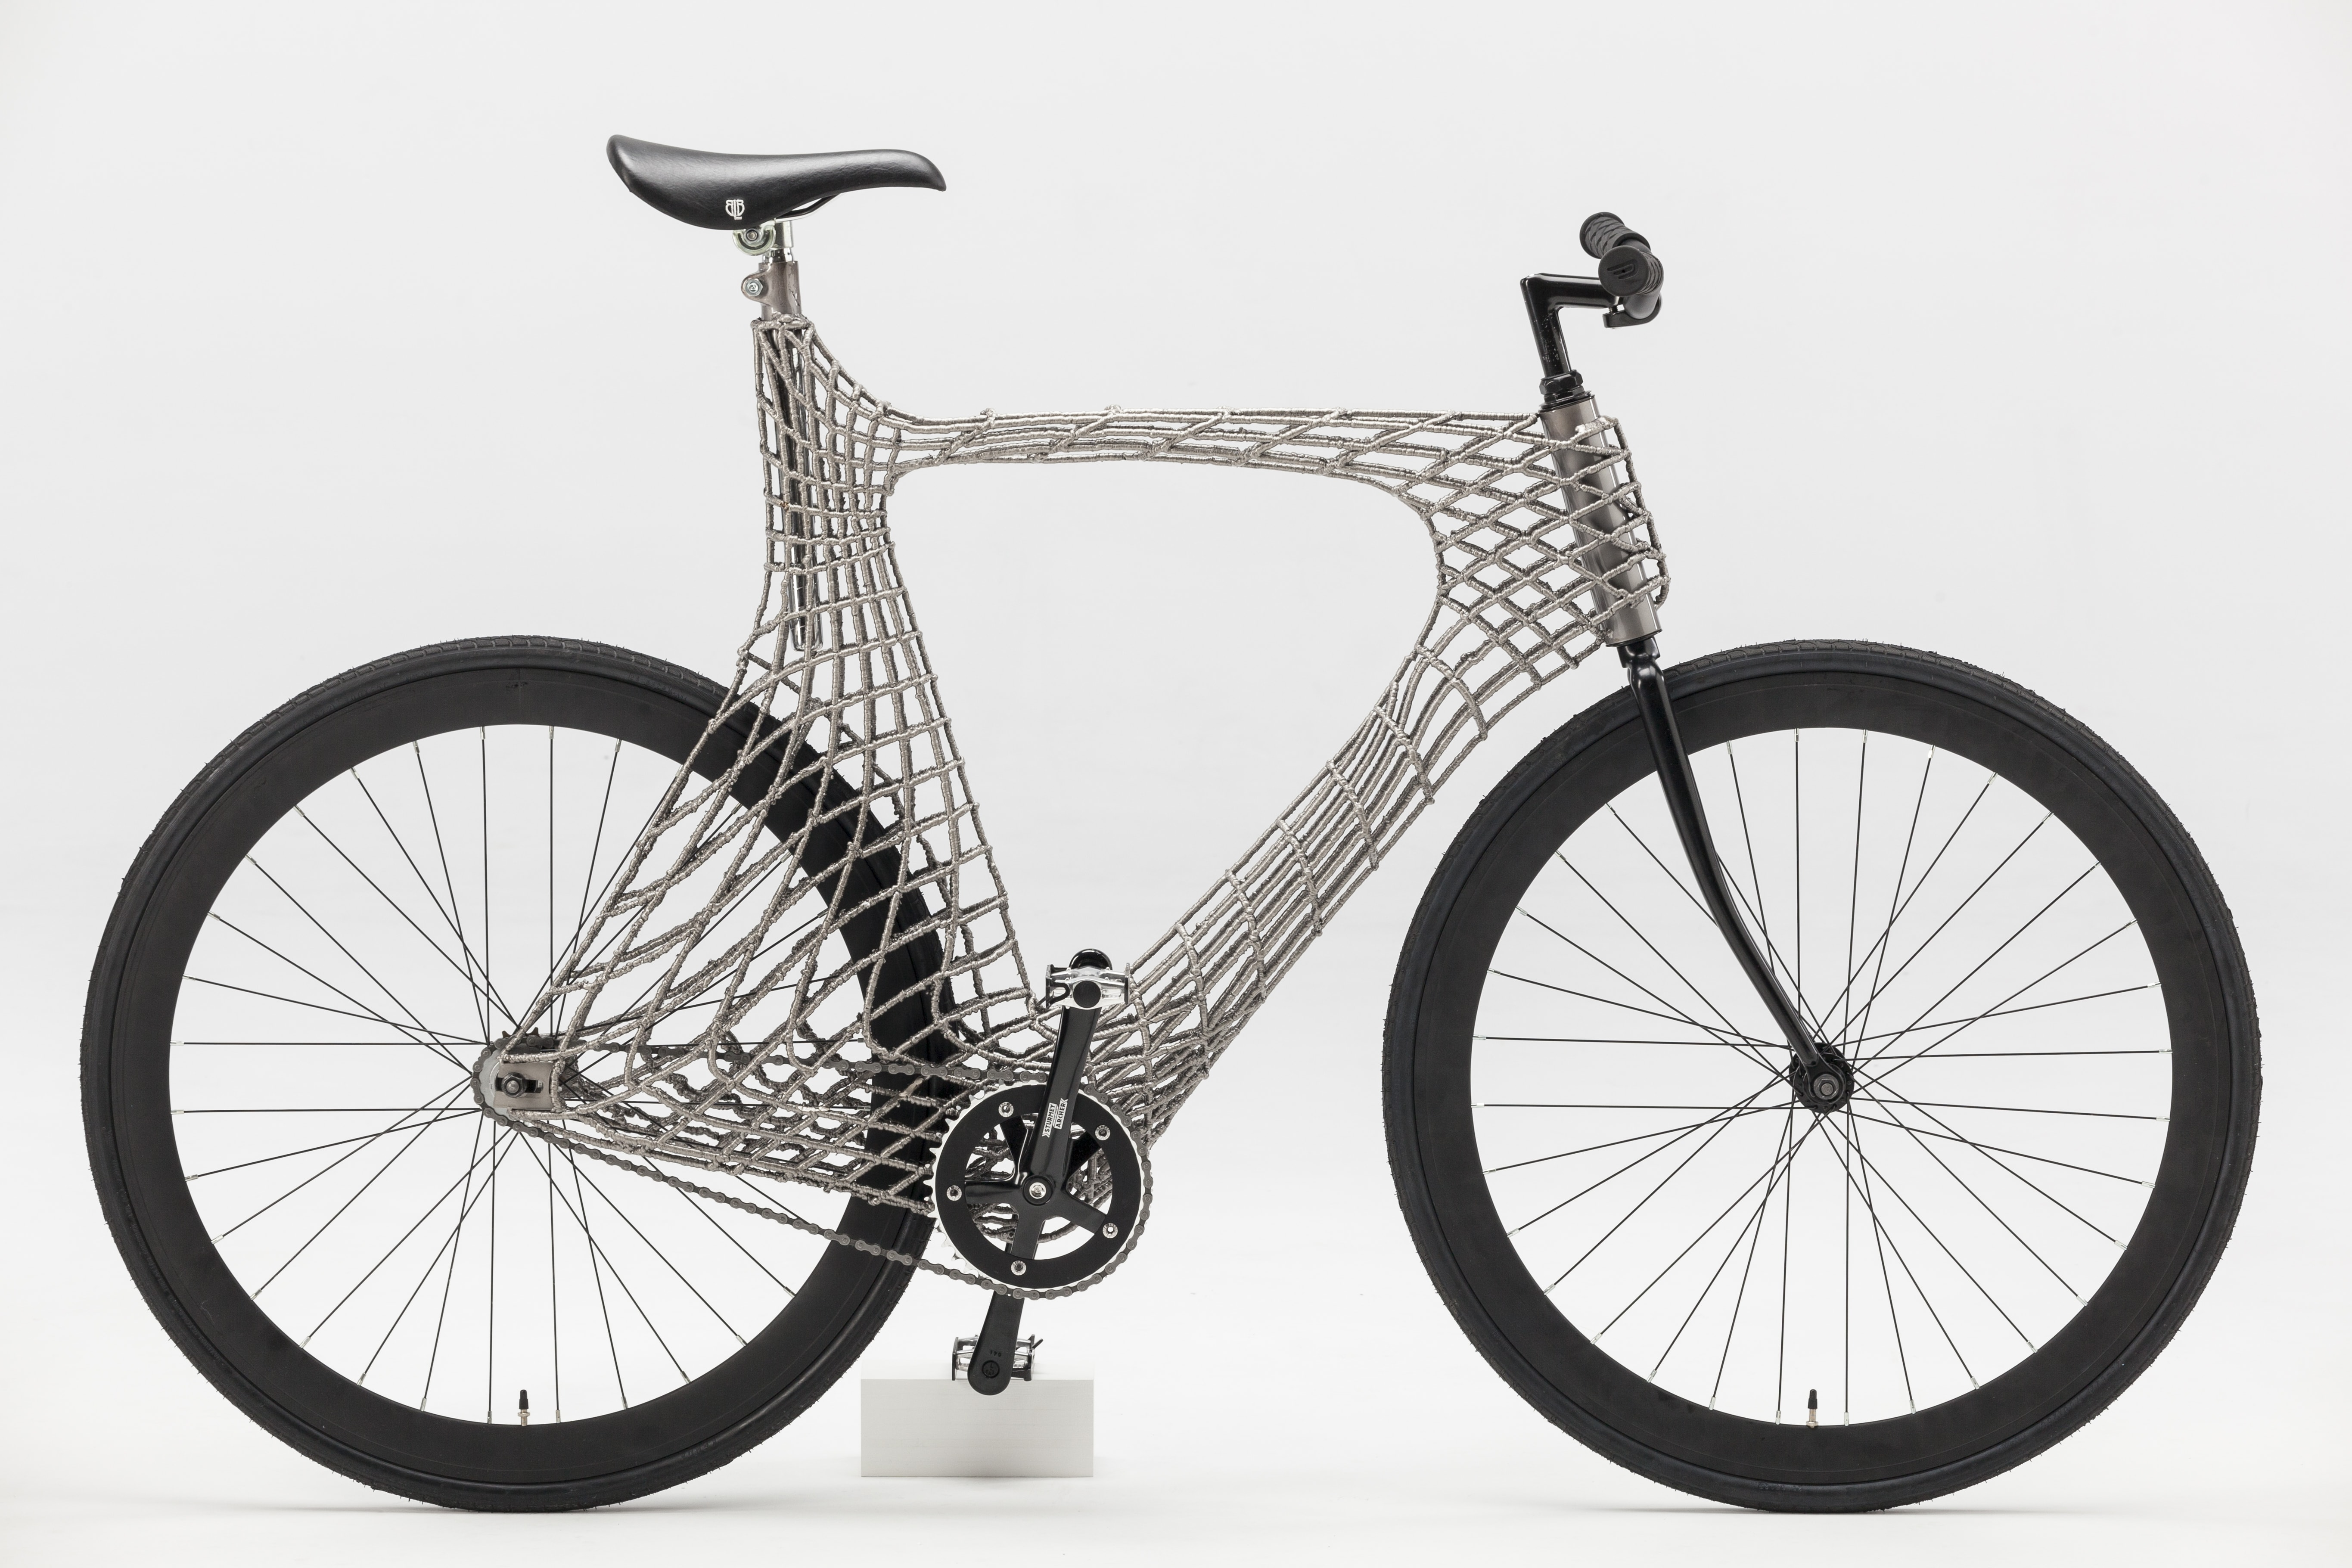 TU Delft Students 3D Print Stainless Steel Bicycle with the Help of ...